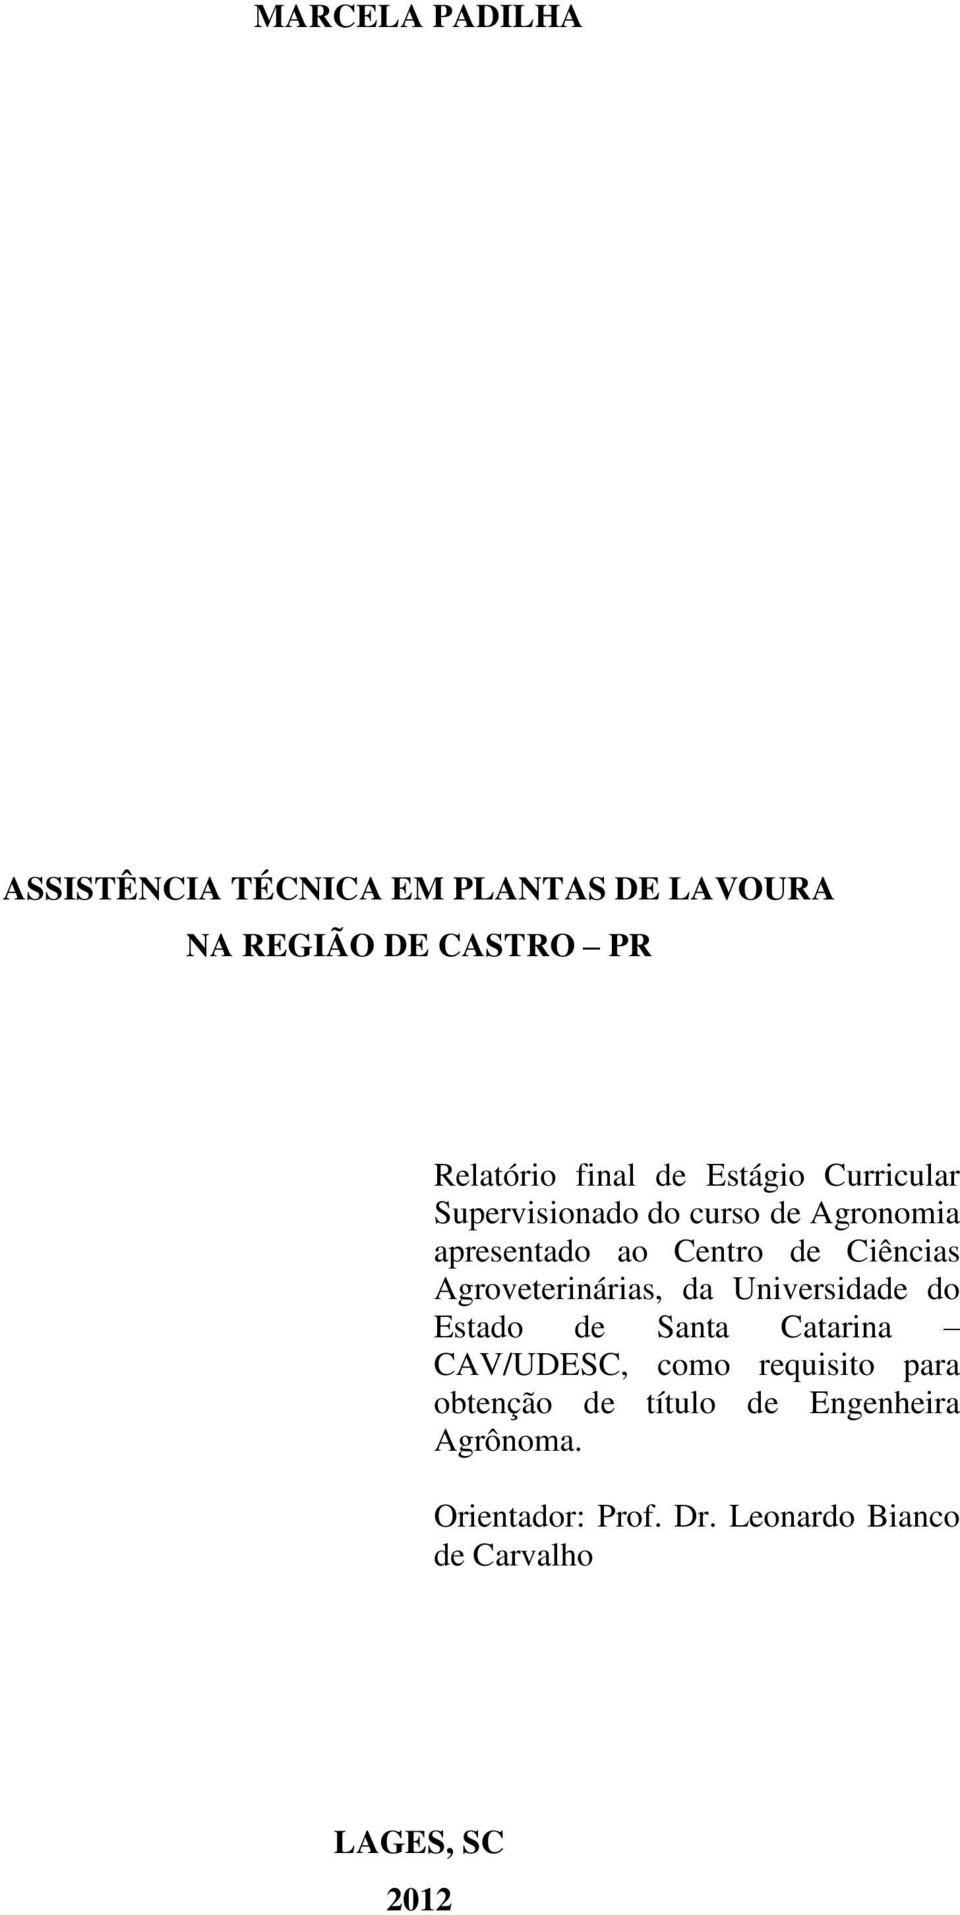 Agroveterinárias, da Universidade do Estado de Santa Catarina CAV/UDESC, como requisito para